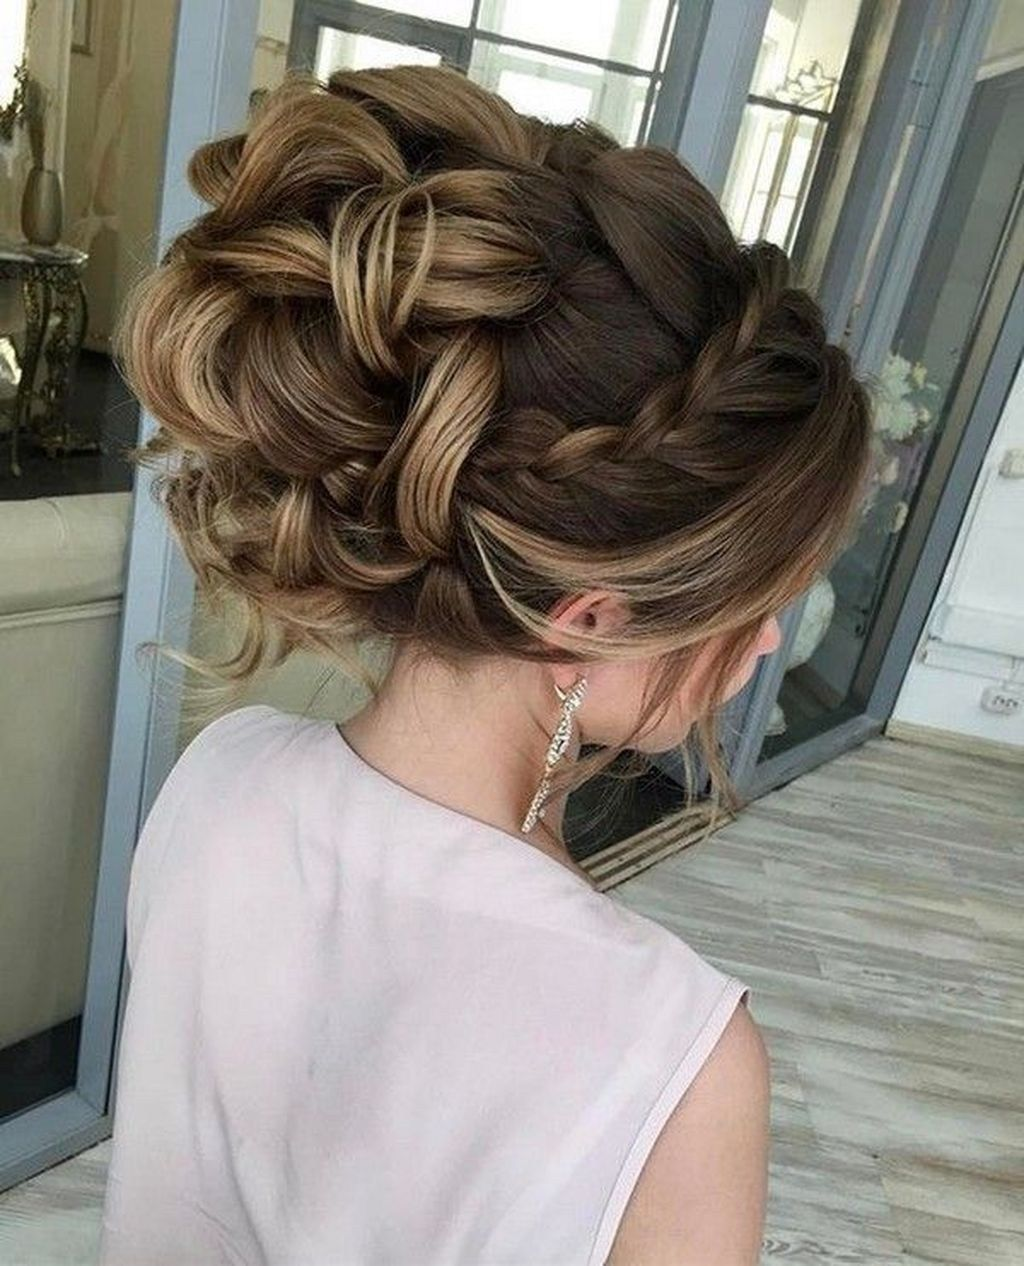 beautiful wedding updo hairstyle ideas 16 | day of hair